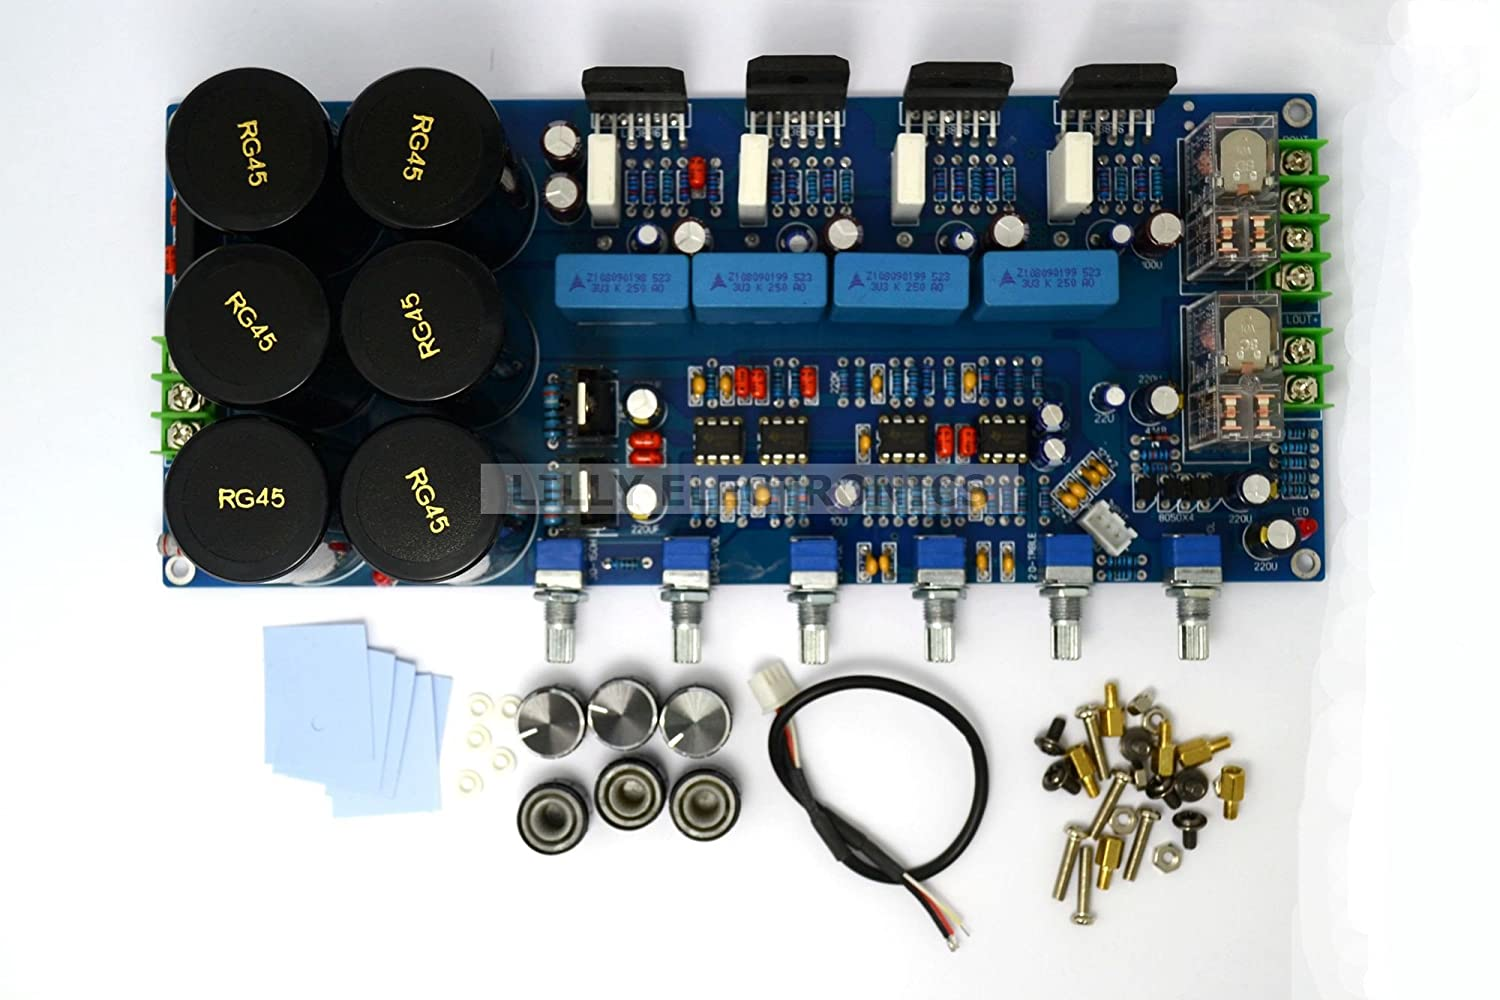 Q Baihe Lm3886 21 Subwoofer Fever Level Amplifier Board 300w High Power Diy Circuit Hifi With Protection Industrial Scientific